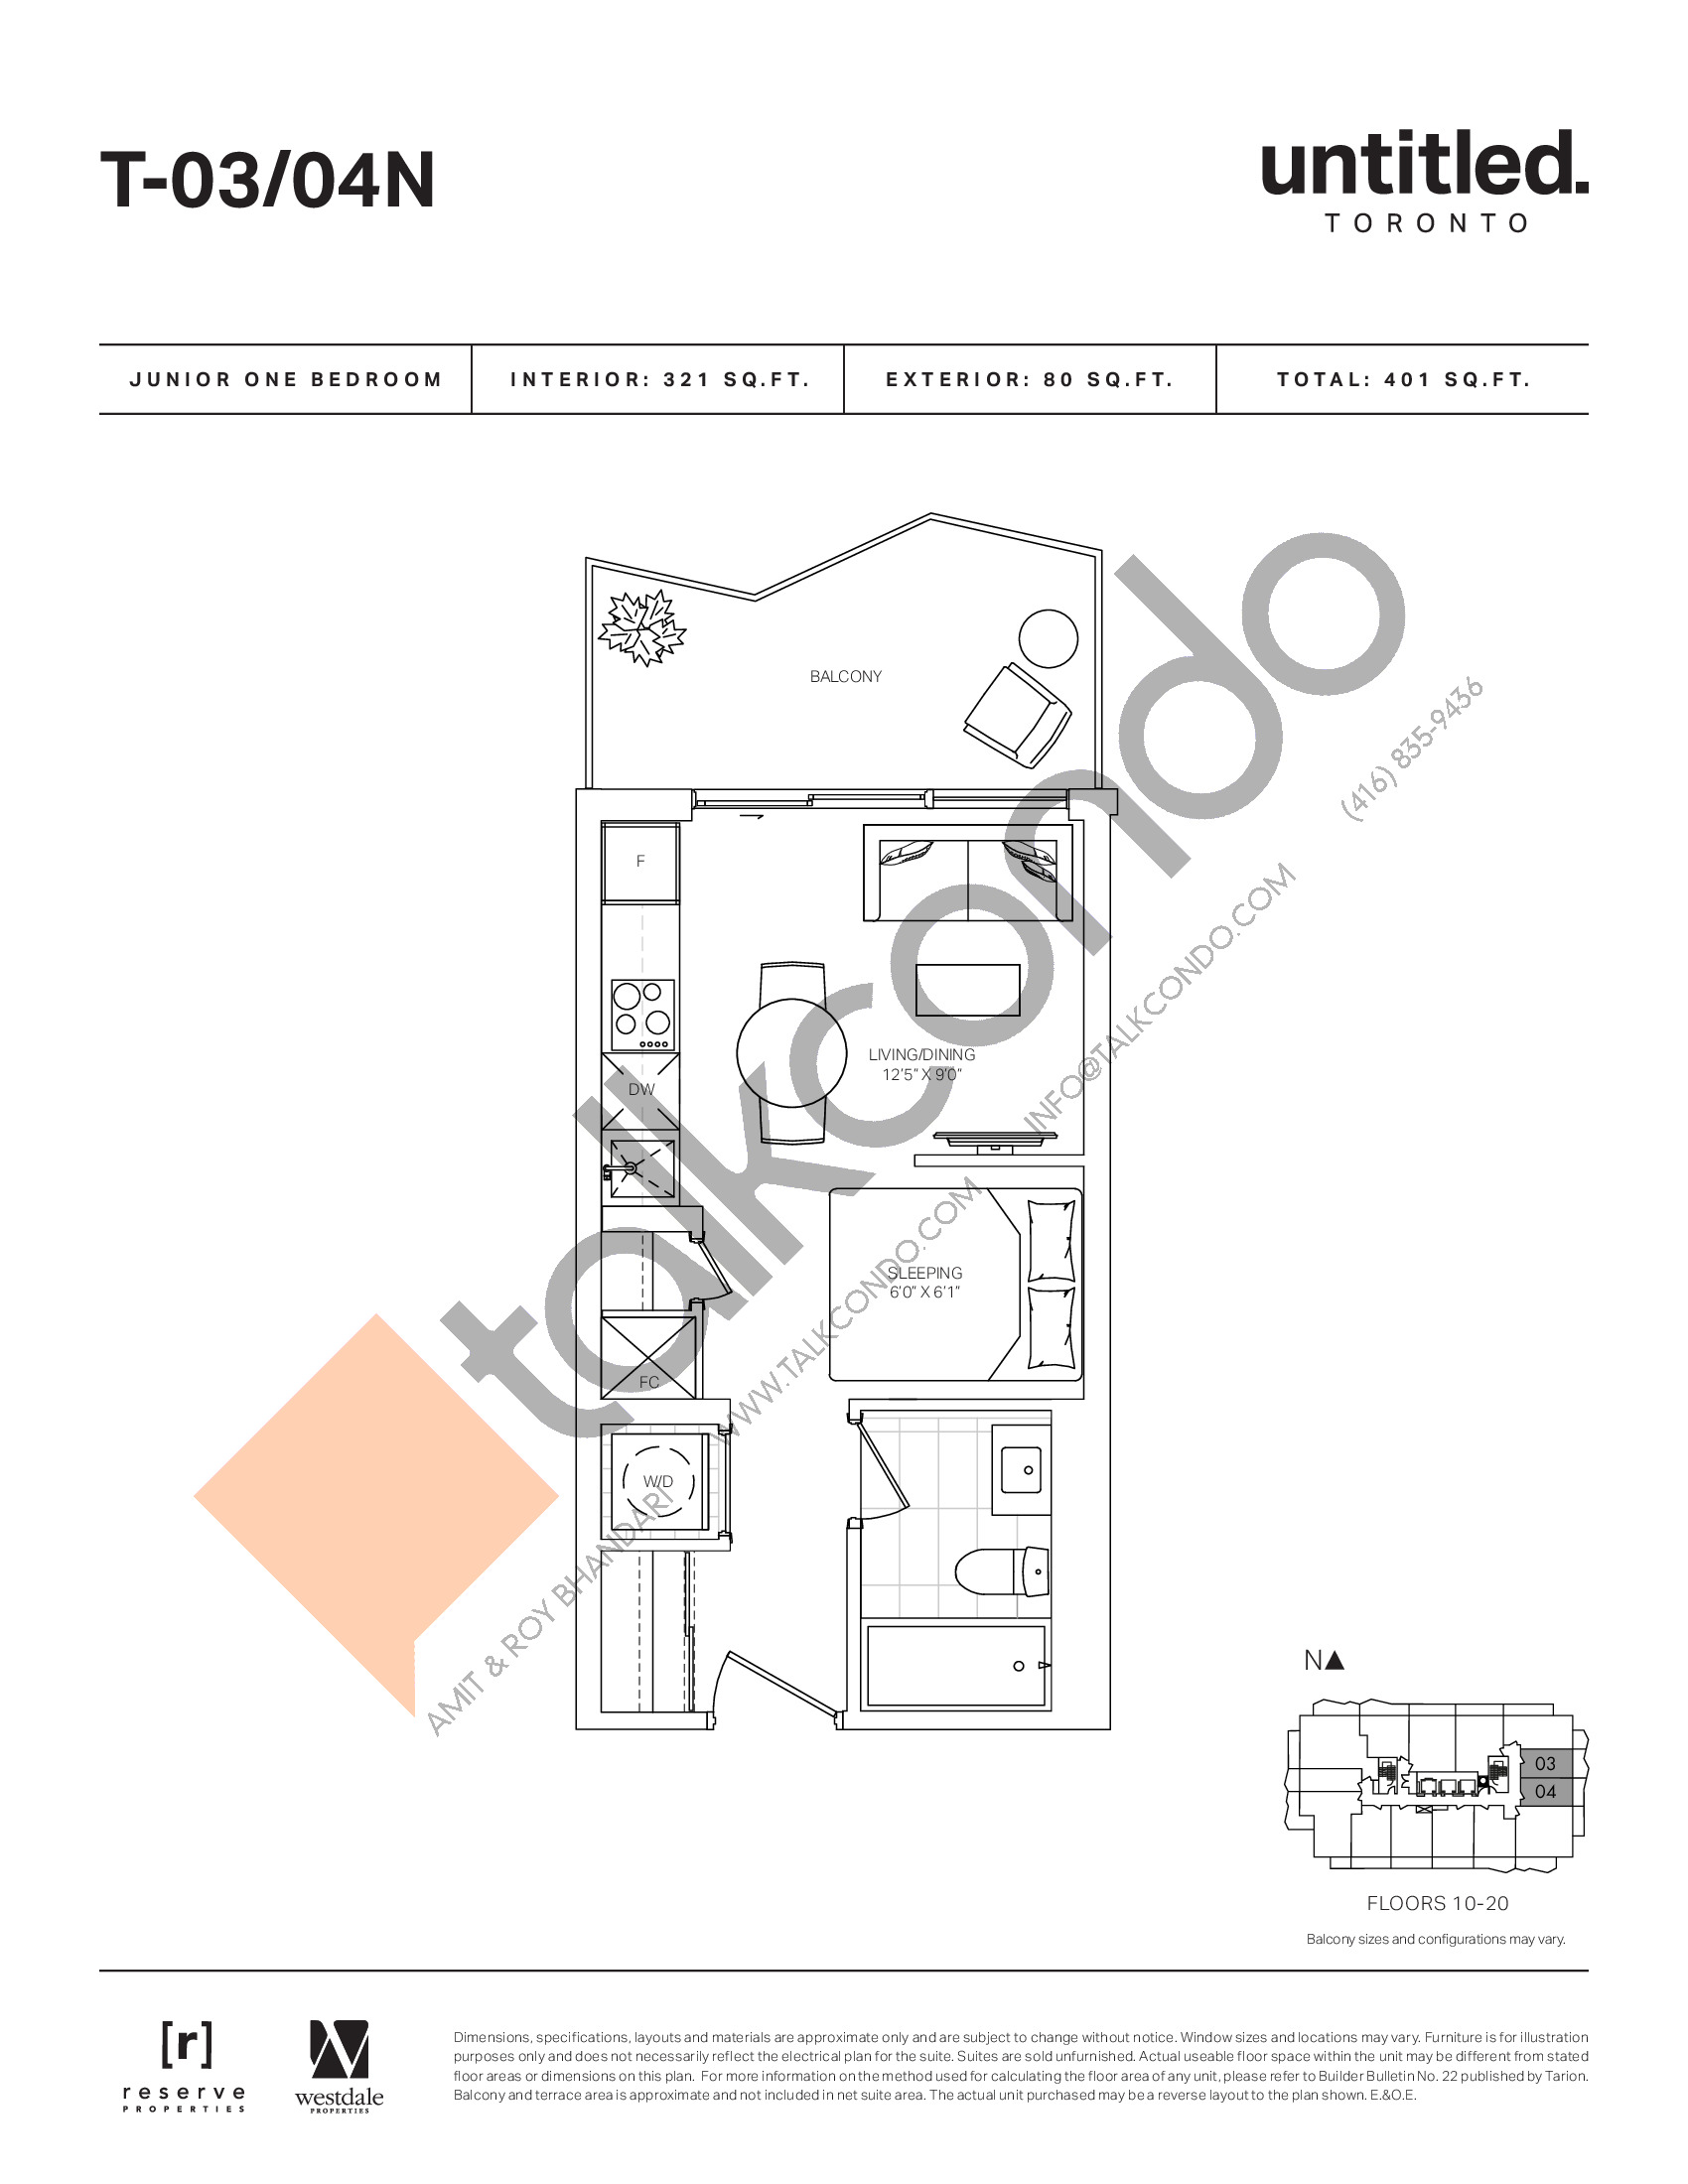 T-03/04N Floor Plan at Untitled North Tower Condos - 321 sq.ft